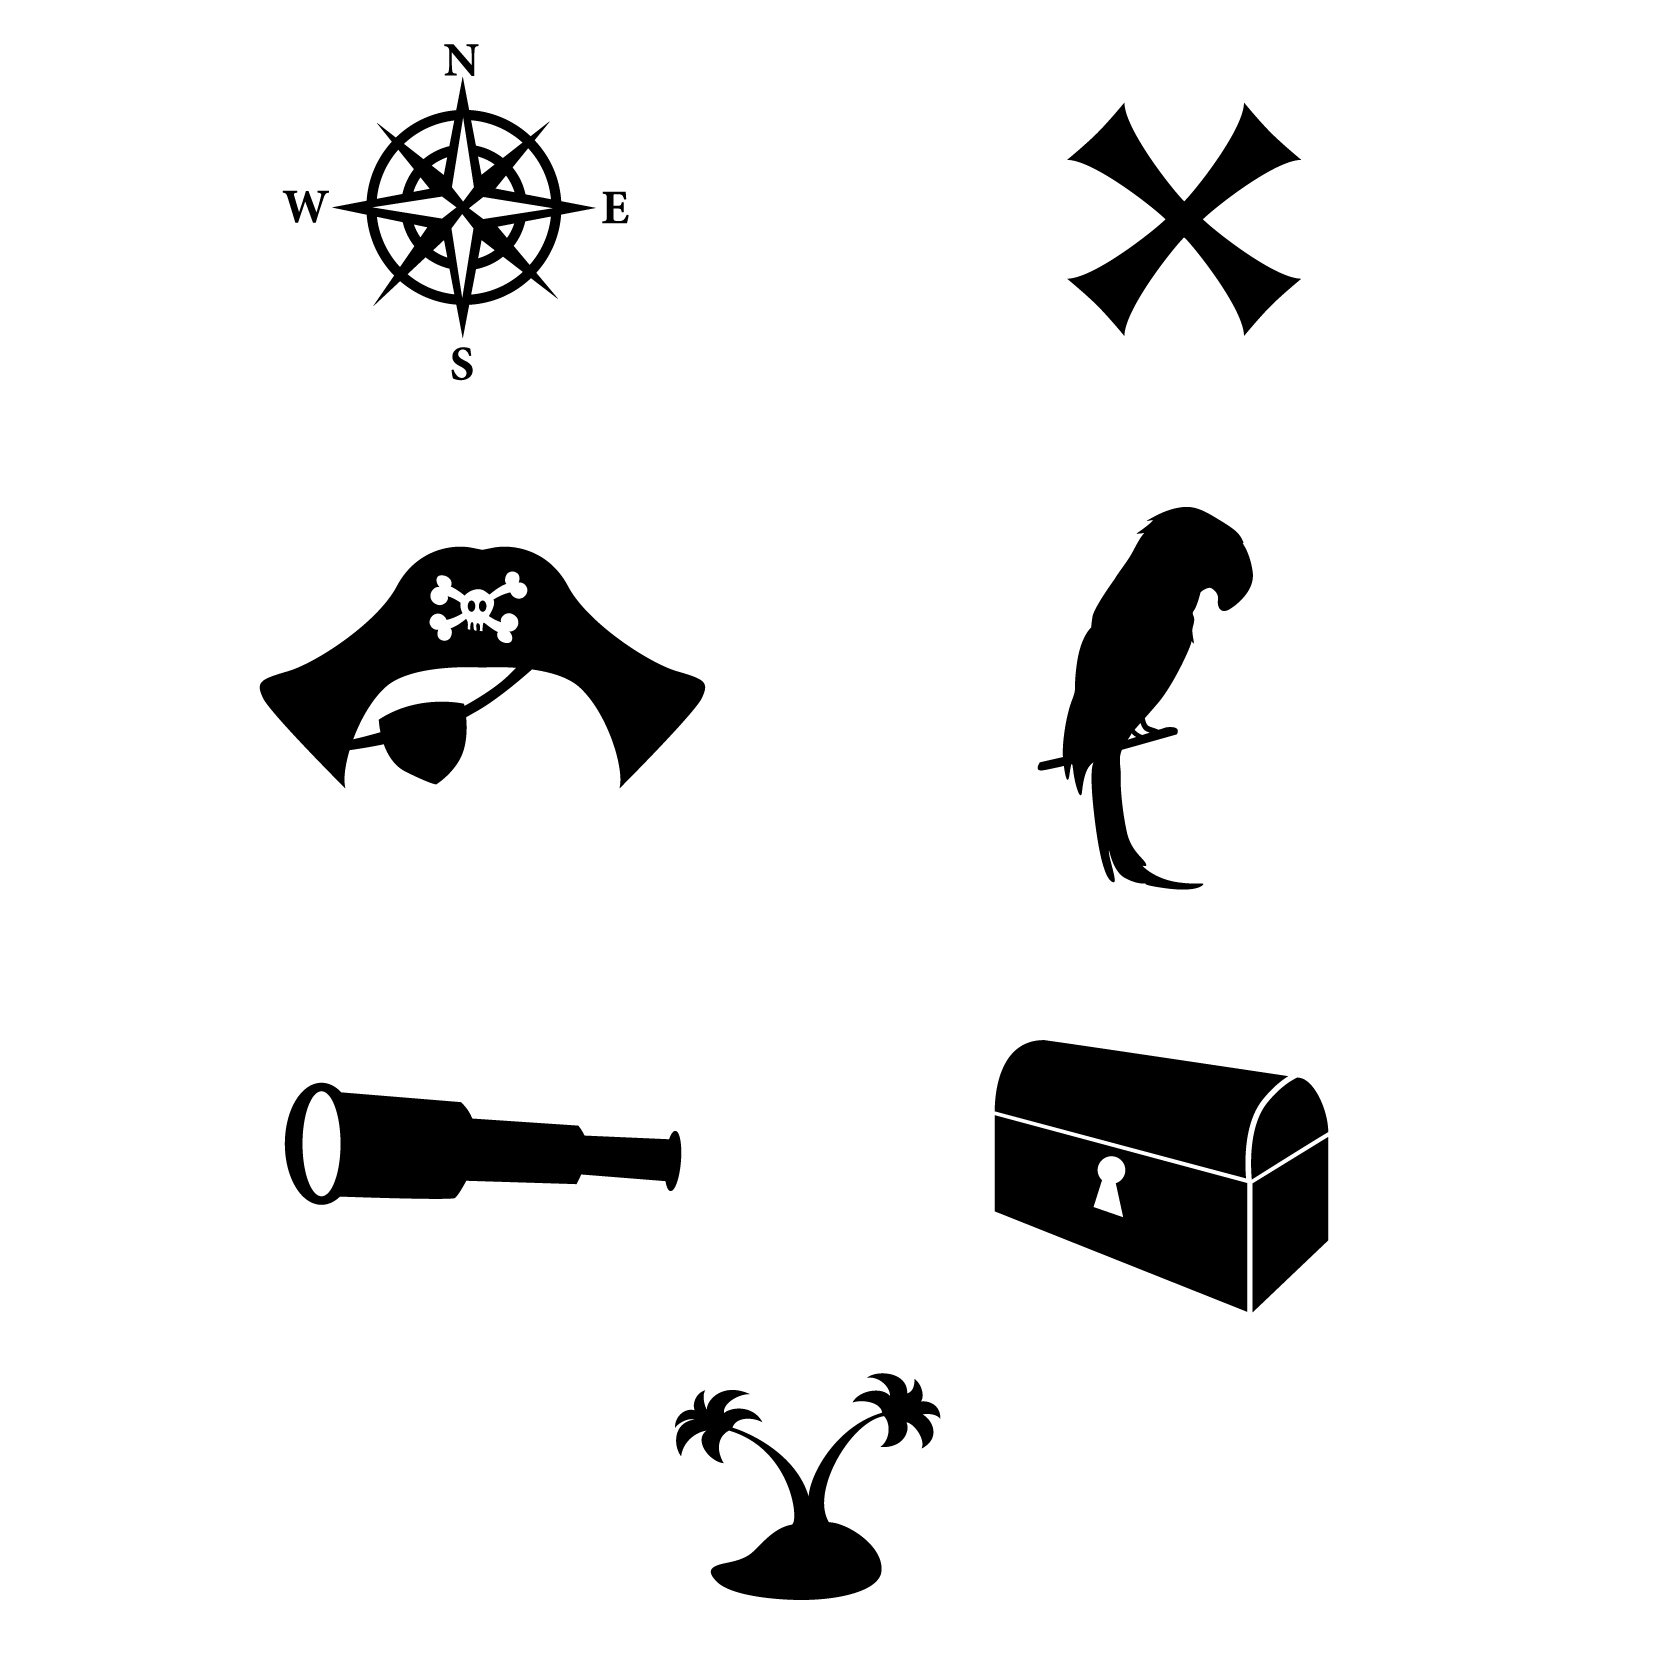 Pirate Pattern Repeatable Icons - 5 sets, 35 icons, Black - Vinyl Wall Art Decal for Homes, Offices, Kids Rooms, Nurseries, Schools, High Schools, Colleges, Universities, Interior Designers, Architects, Remodelers